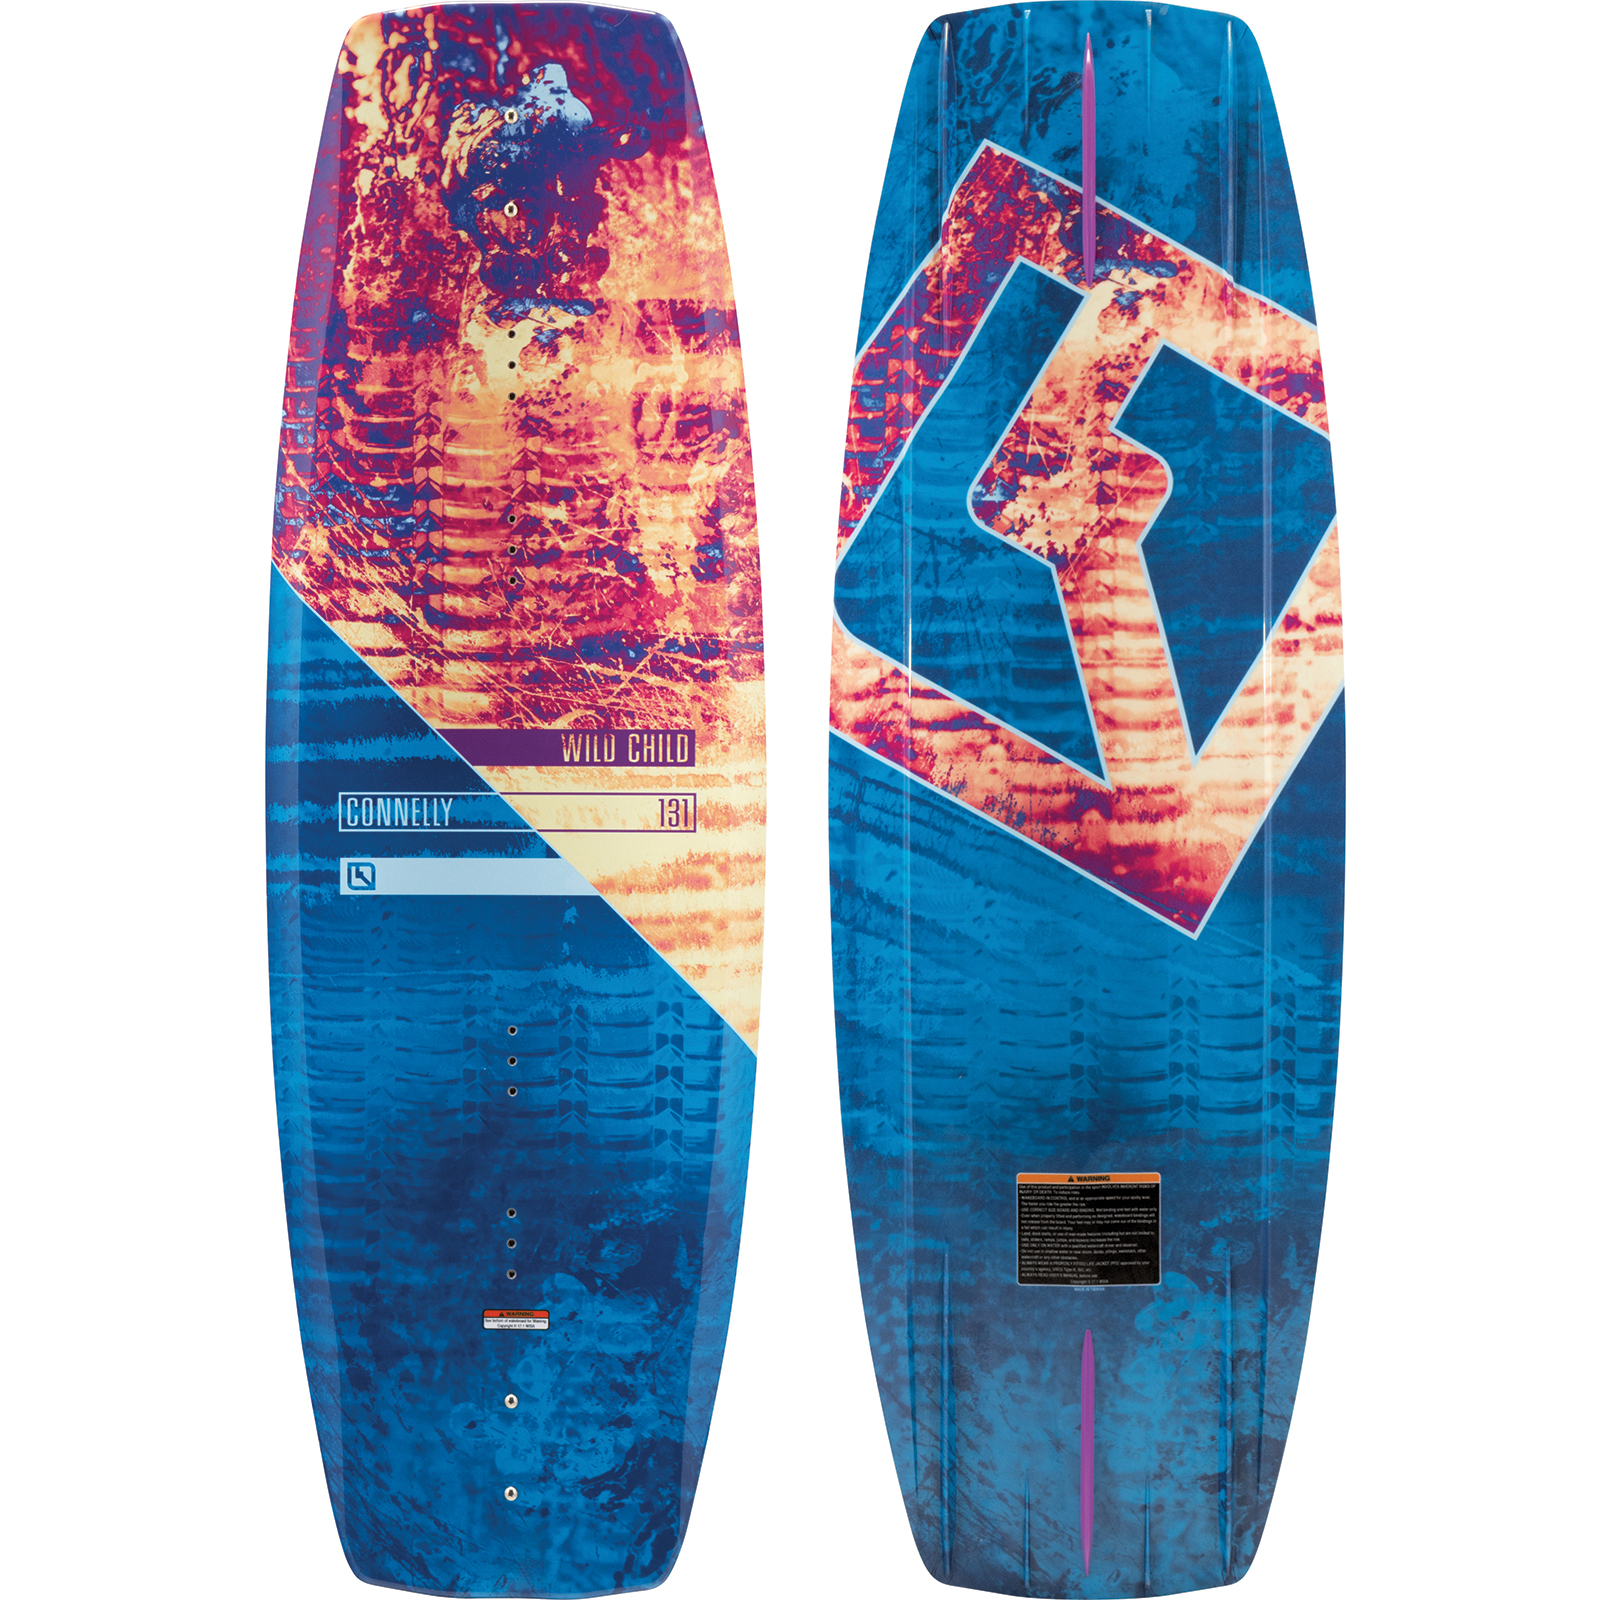 WILDCHILD 131 JR. WAKEBOARD CONNELLY 2018